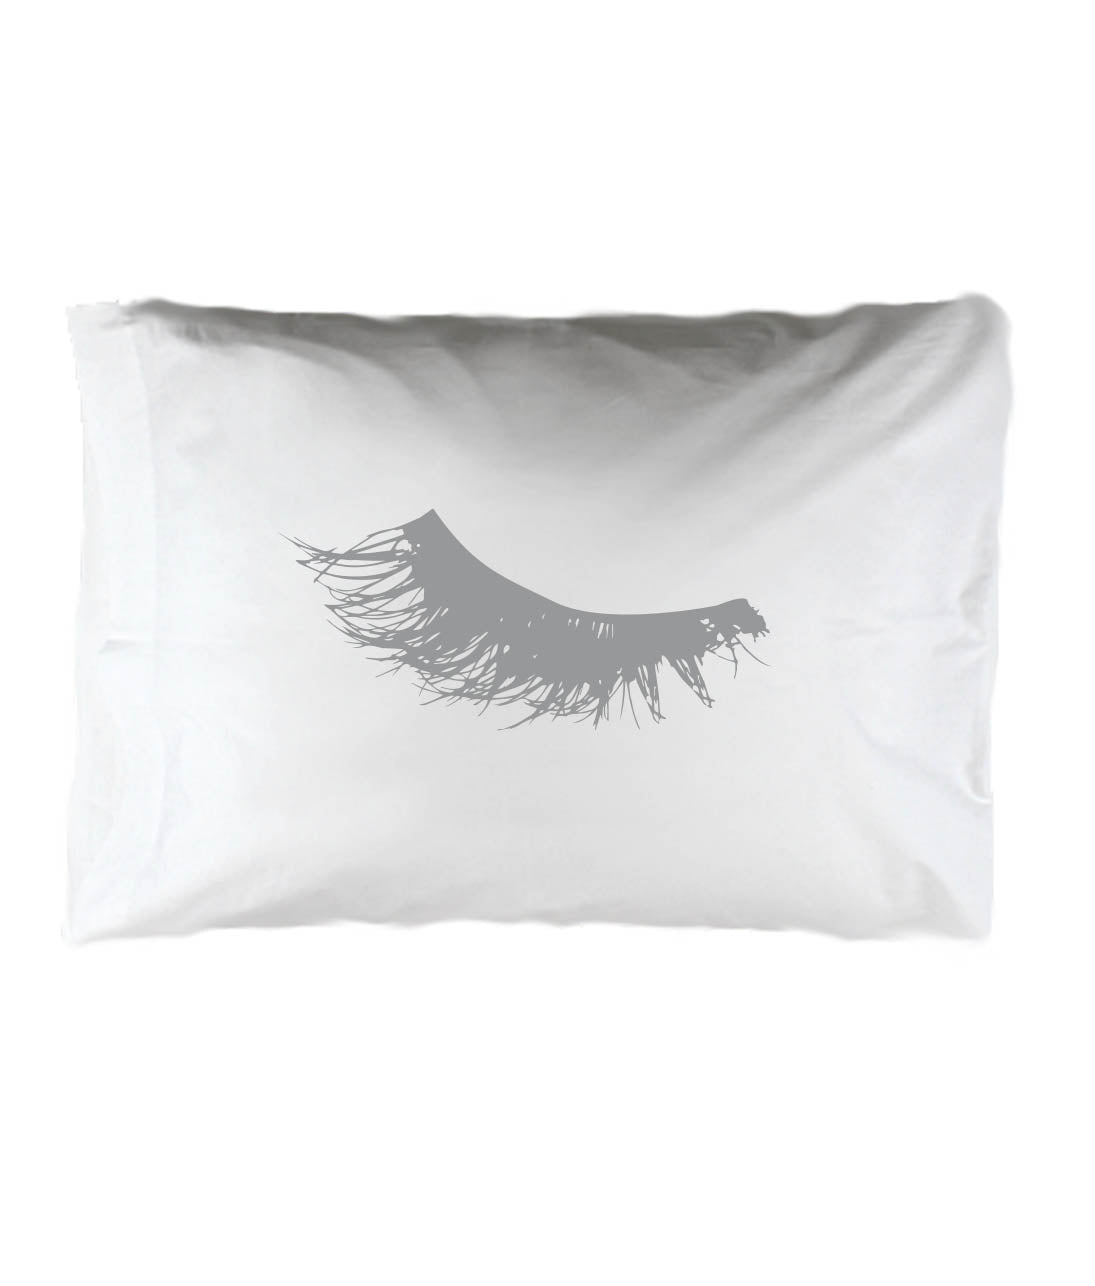 LAST CHANCE | General 144567 | Sweet Dreams Pillowcase